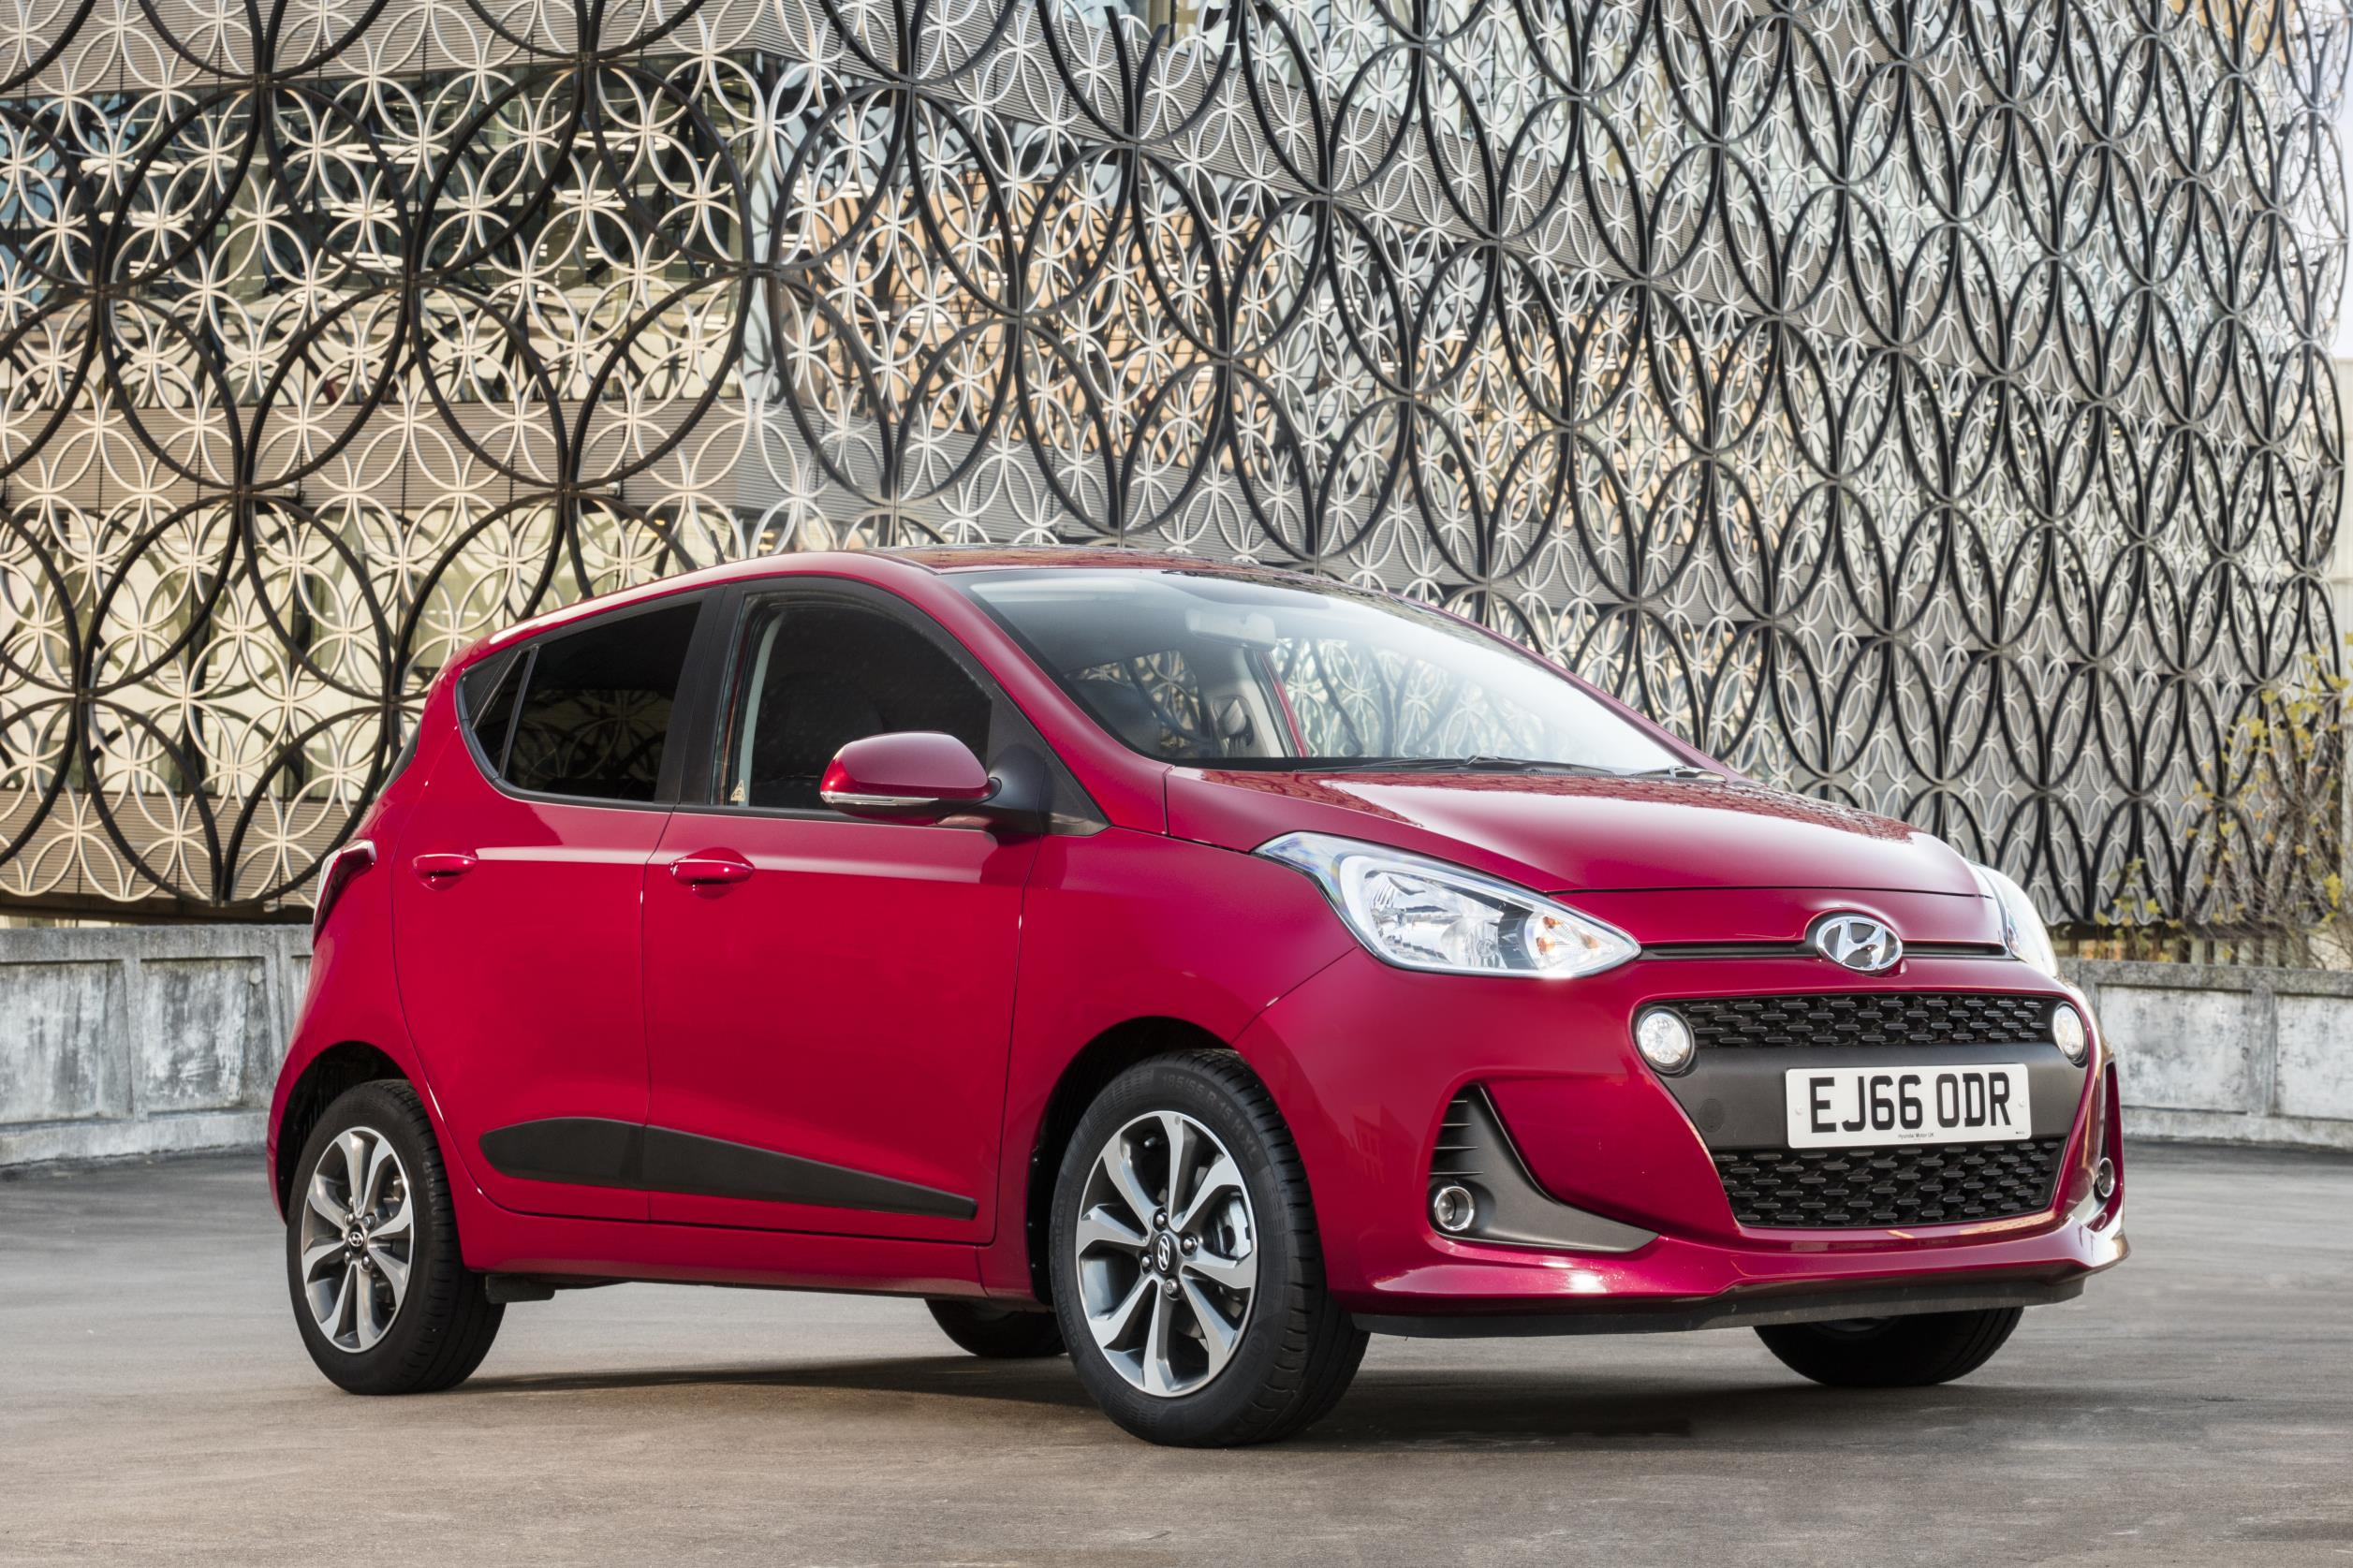 Used City Car For Sale